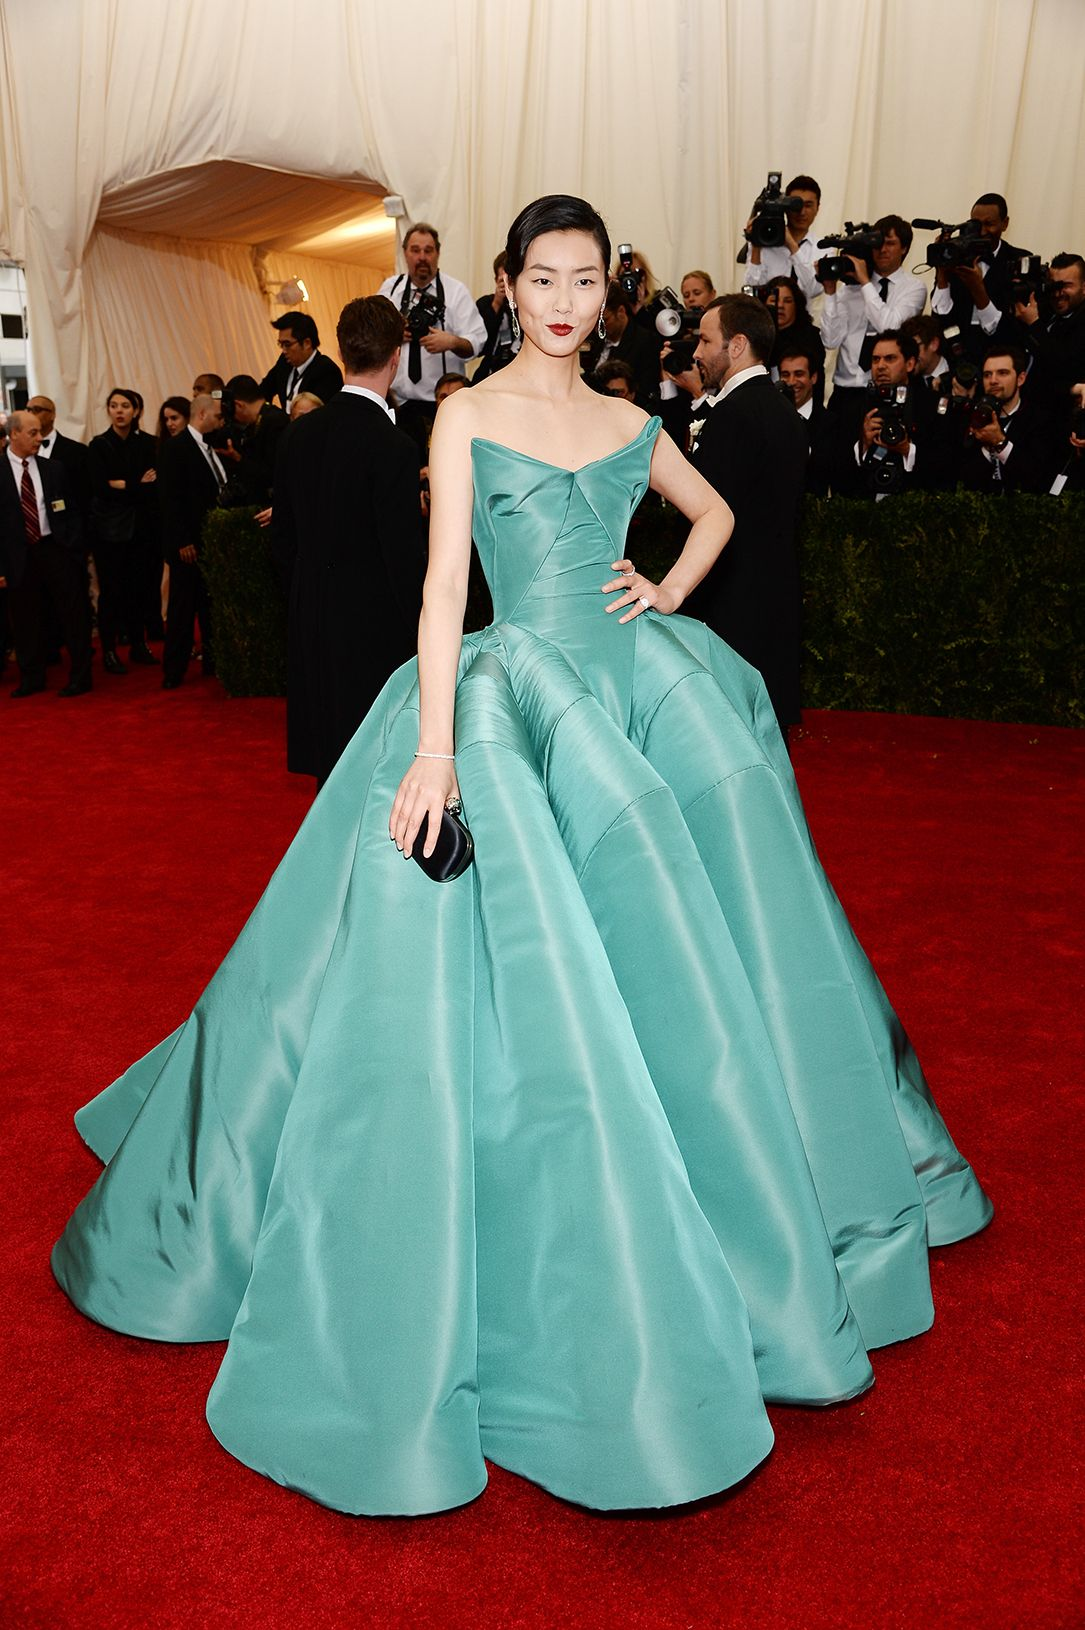 The Most Gorgeous Looks From The Met Gala | Met gala 2014 ...